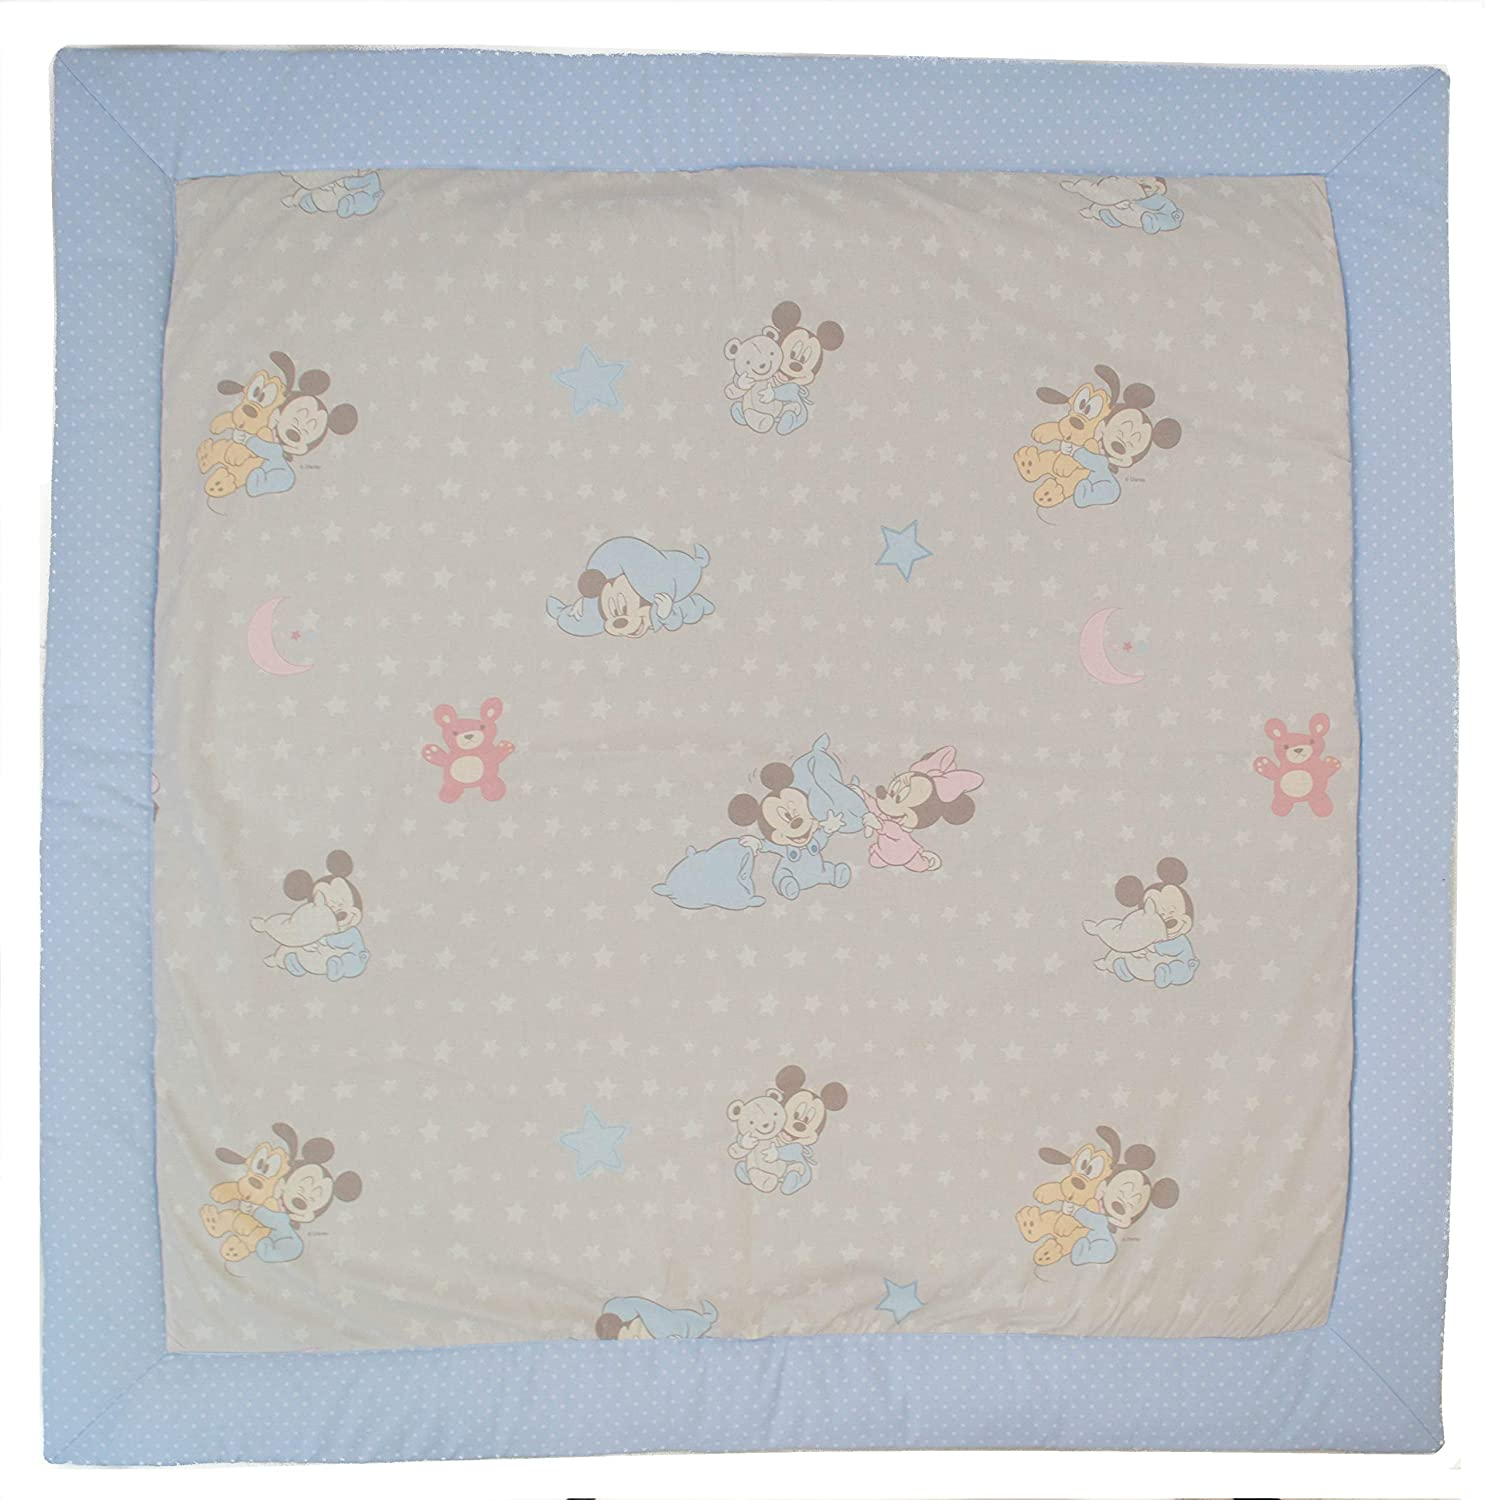 Baby Mickey&Minnie Light bluee 100x100 cm Baby Mats for Floor. Baby Mickey & Minnie Model  Pink (120x120cm)